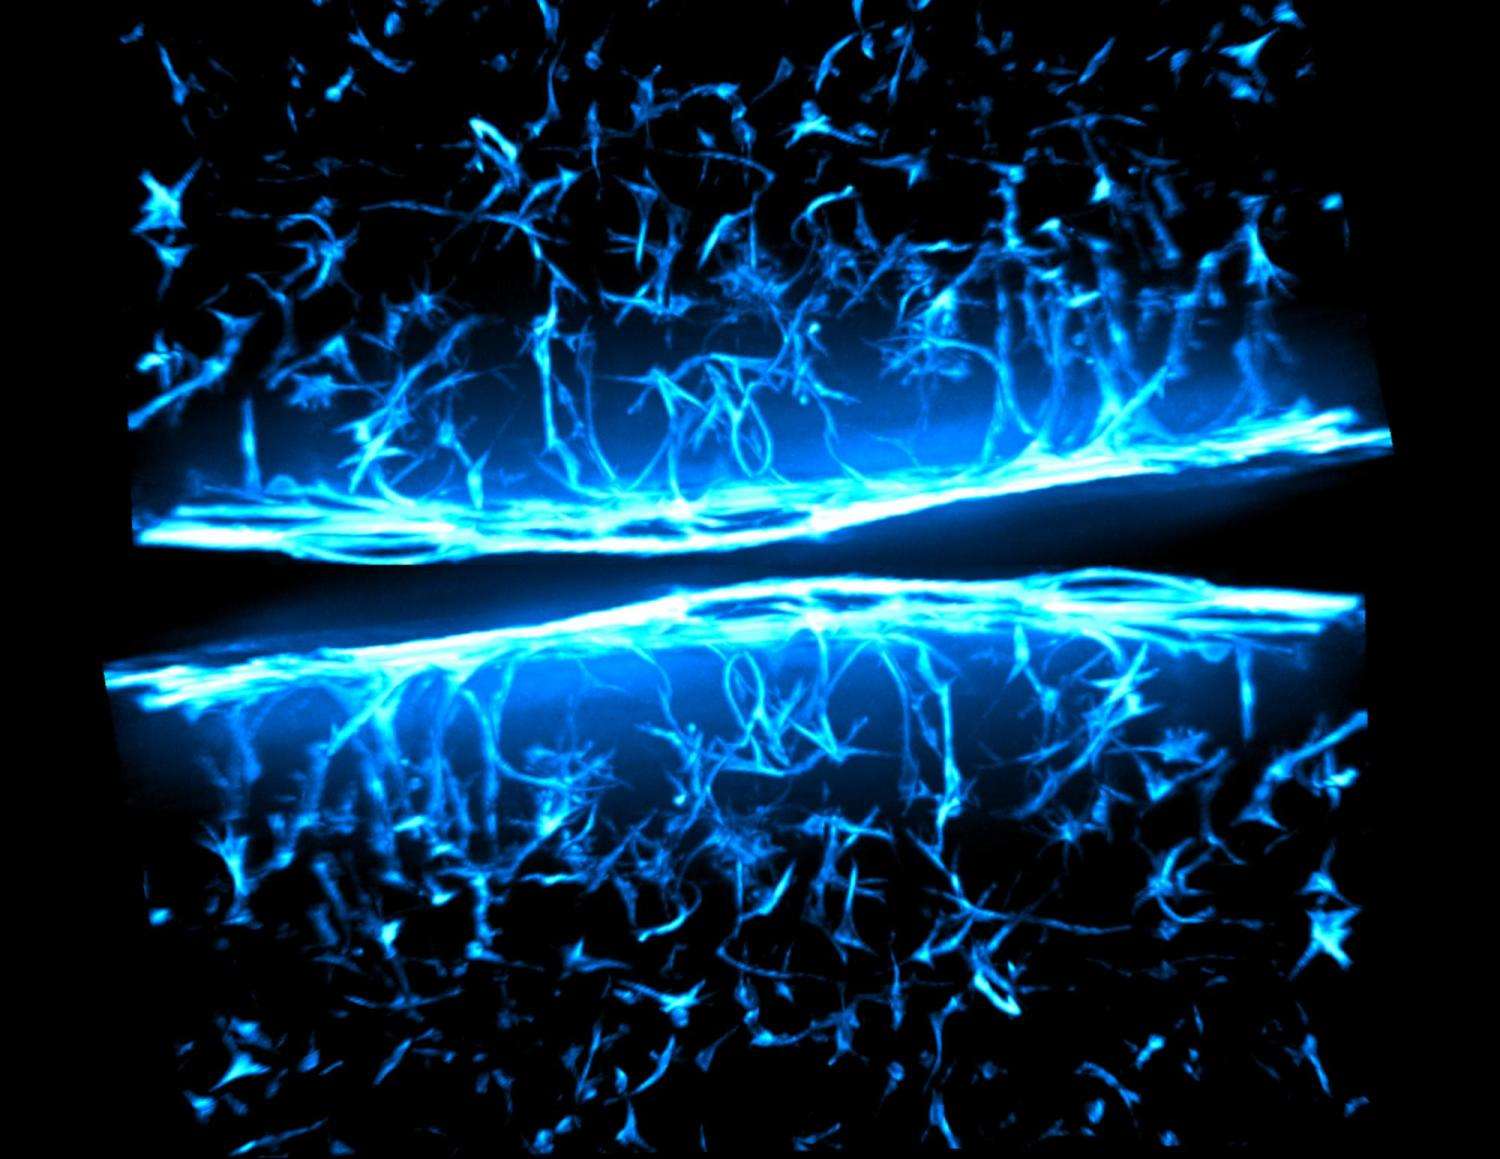 Understanding why fibrosis occurs is essential for creating drug therapies. To this end, researchers study specific heart valve cells called fibroblasts that are grown in 3D supportive matrix that mimic aspects of native tissue to probe cell response in disease-like scenarios. Here we see fibroblasts within a 3D gel. Various tones of blue mark the individual cell nuclei and their cytoskeletal components.